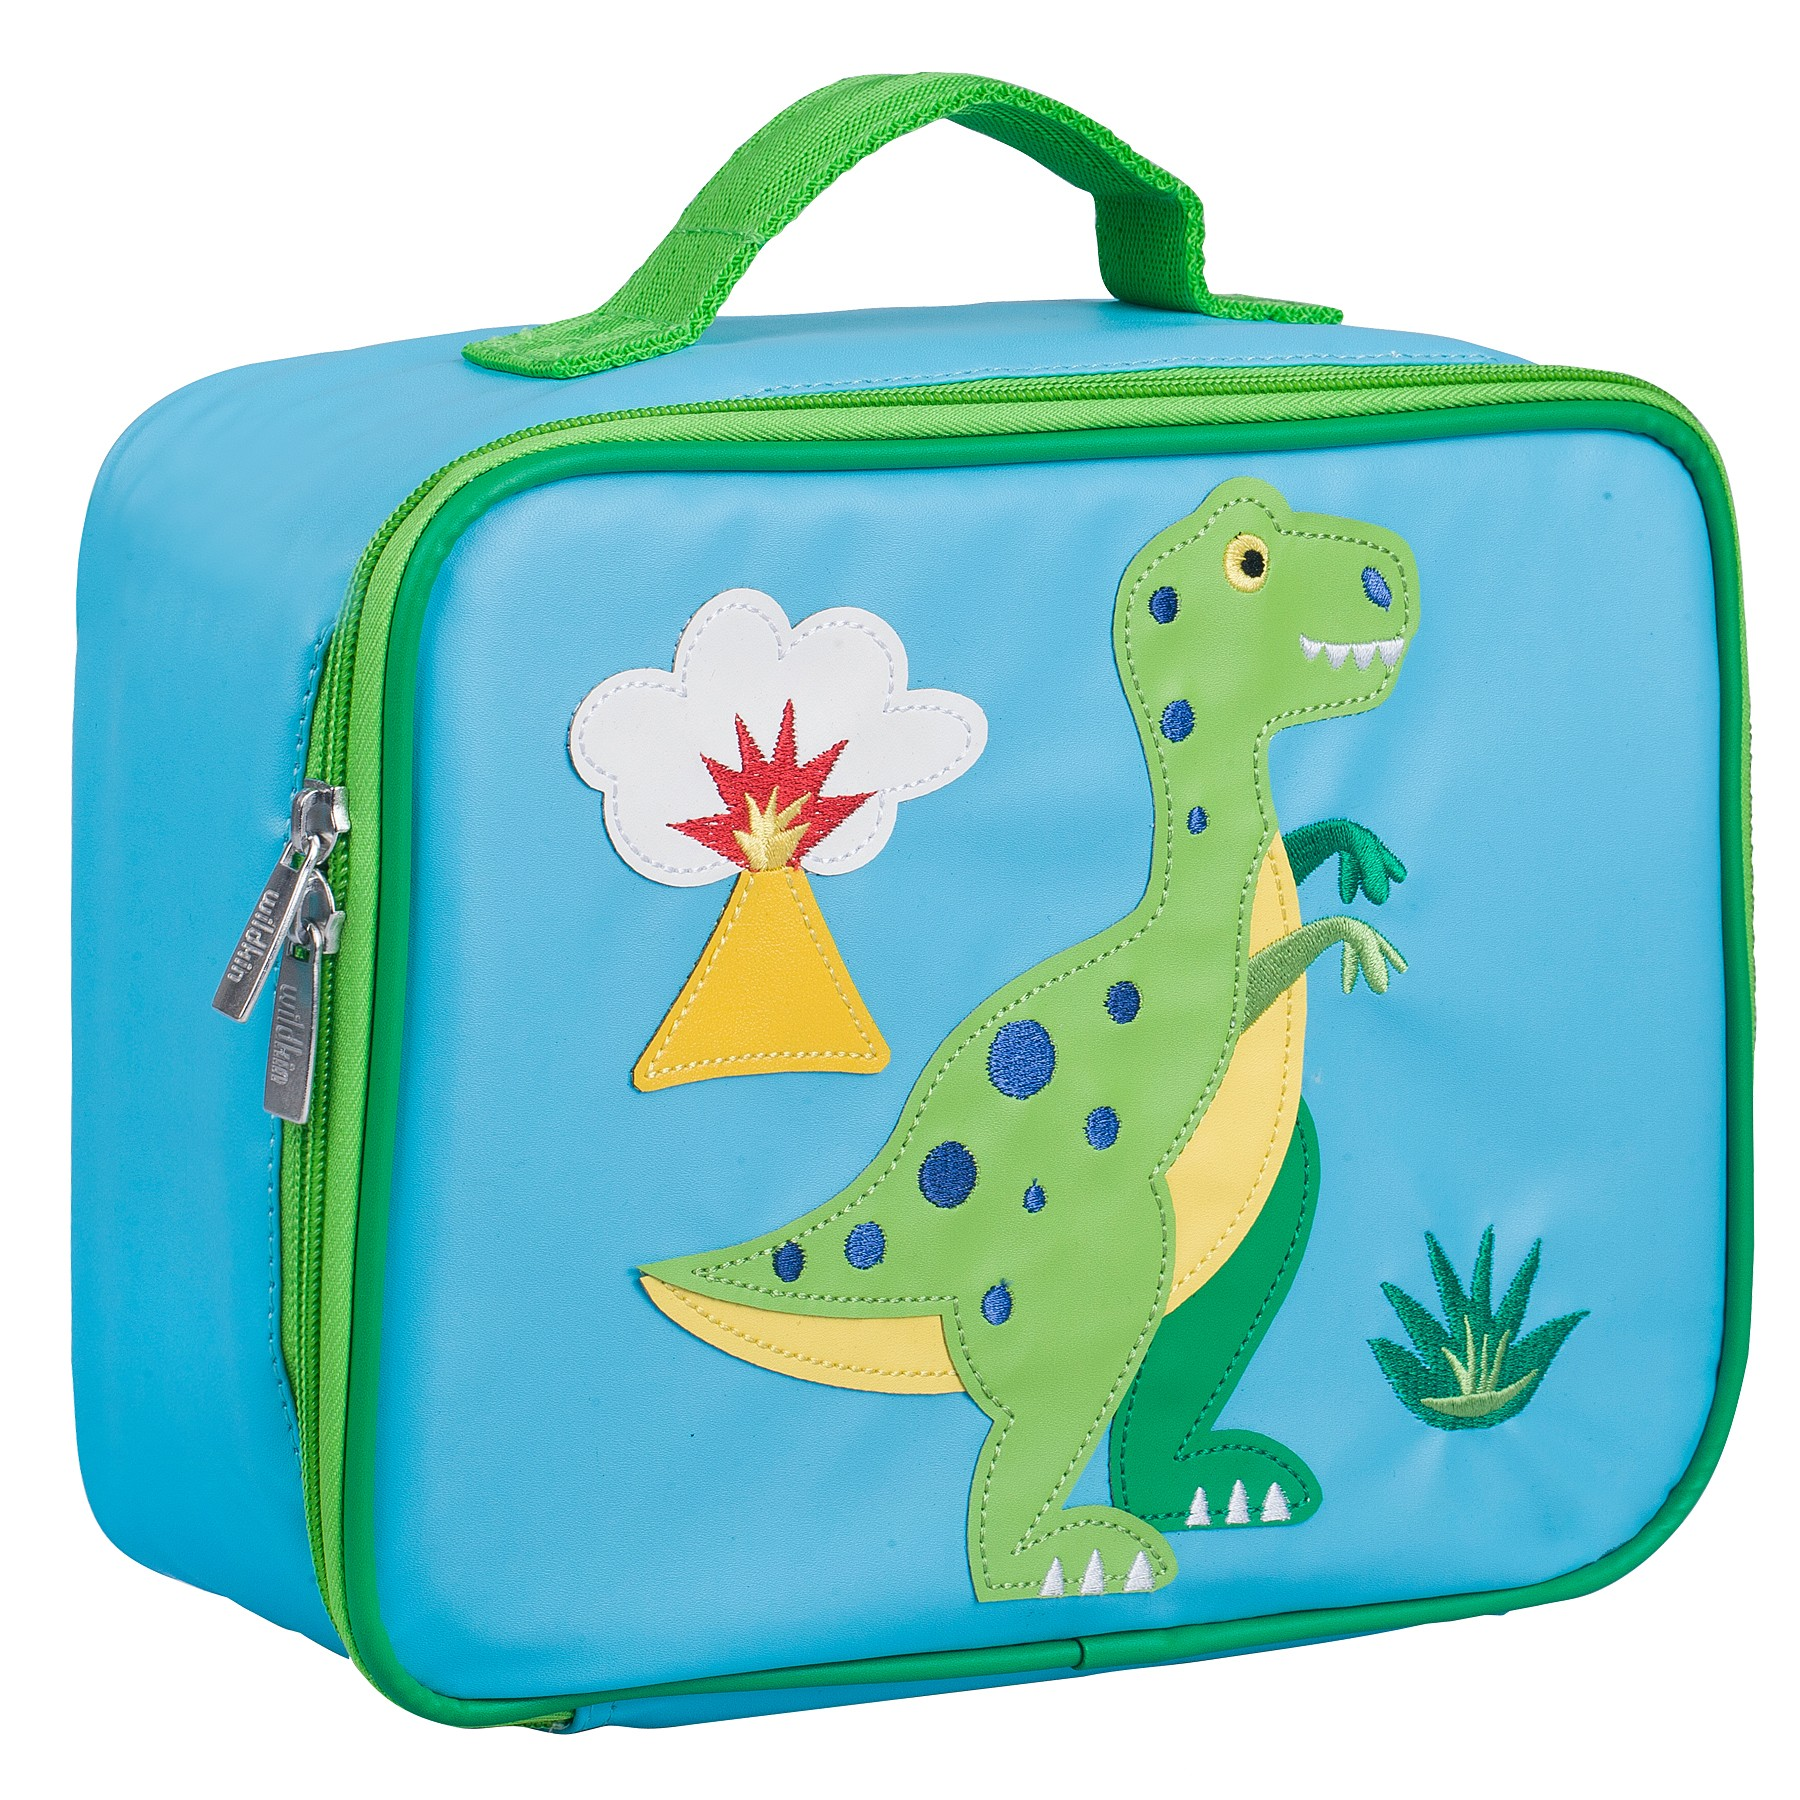 Olive Kids Dinosaur Embroidered Lunch Box